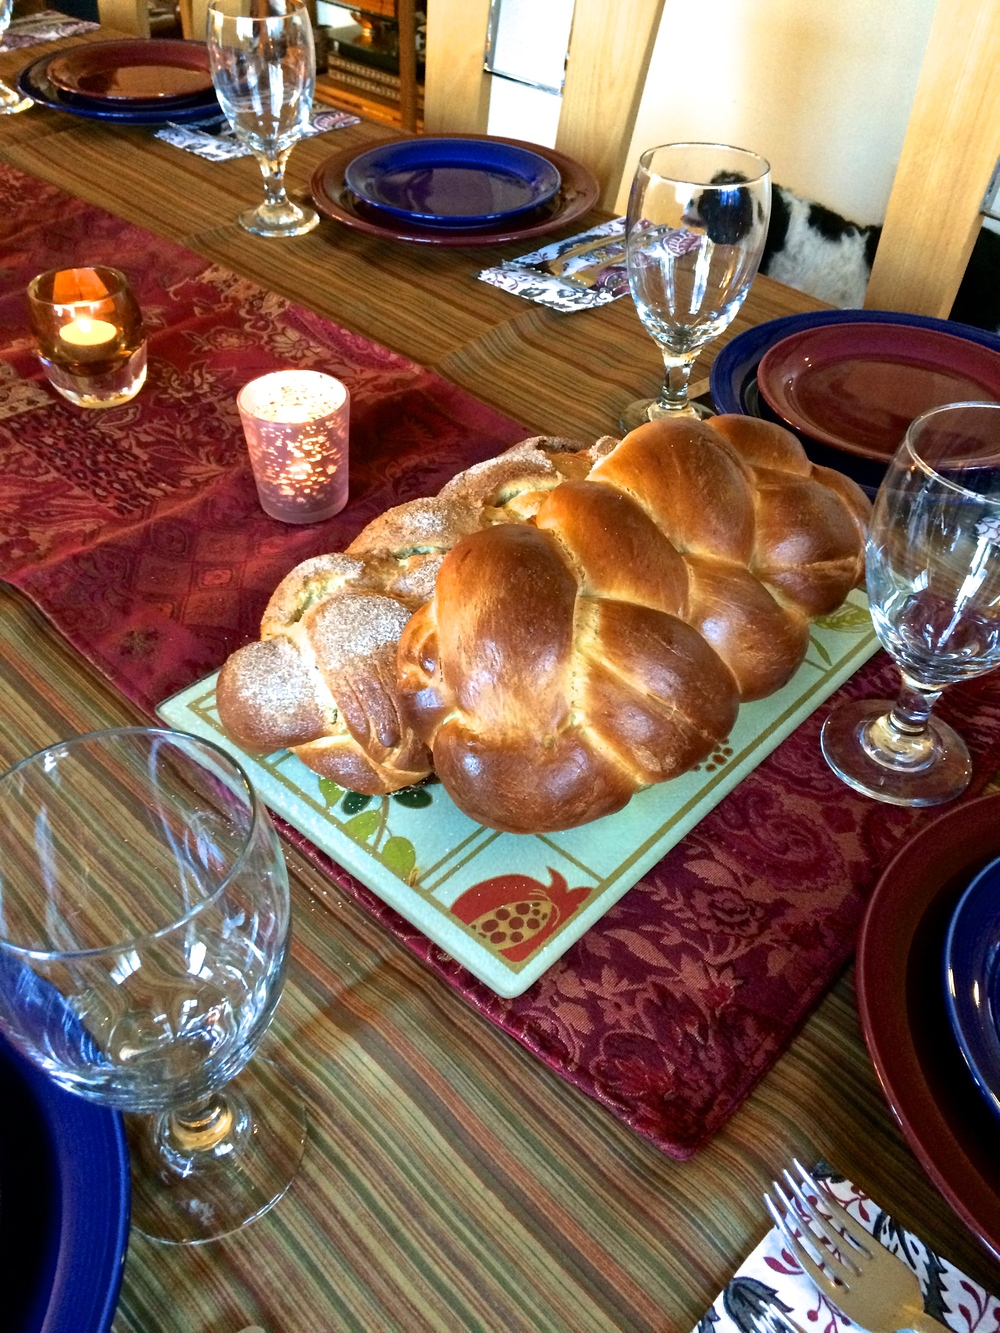 Shabbat Dinner Table (with our dog Lilly)